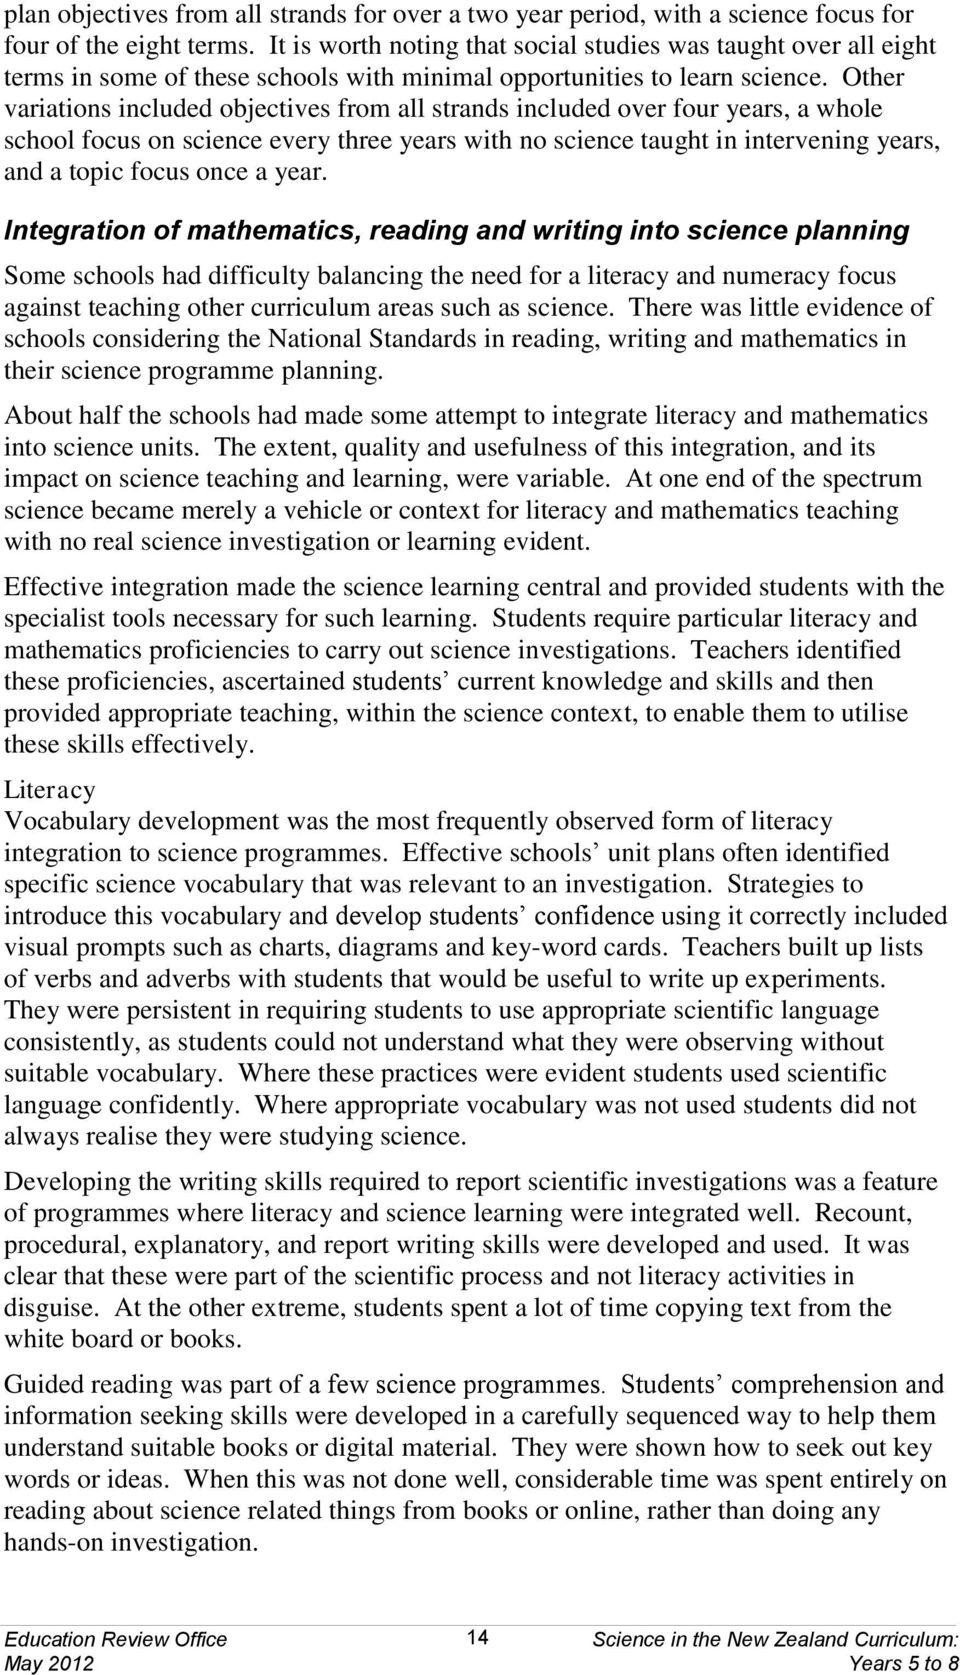 Other variations included objectives from all strands included over four years, a whole school focus on science every three years with no science taught in intervening years, and a topic focus once a